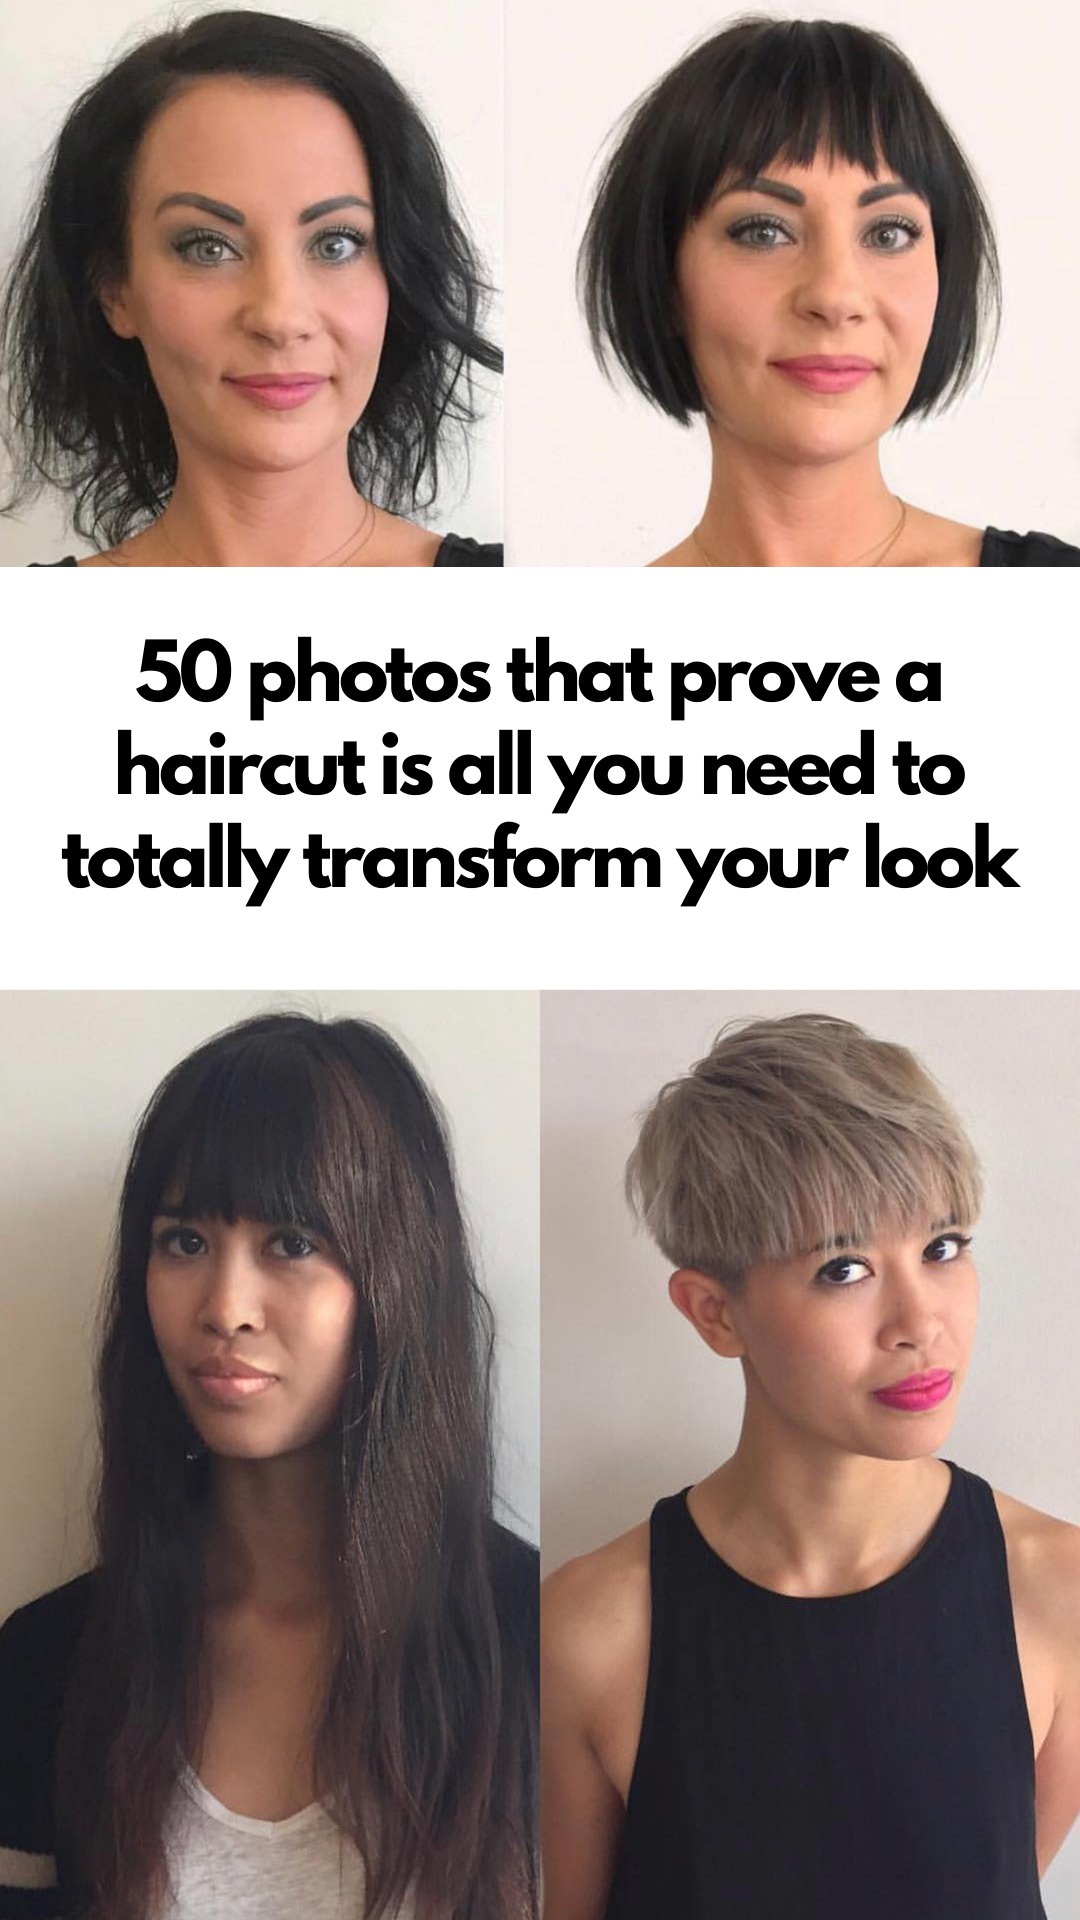 50 photos that prove a haircut is all you need to